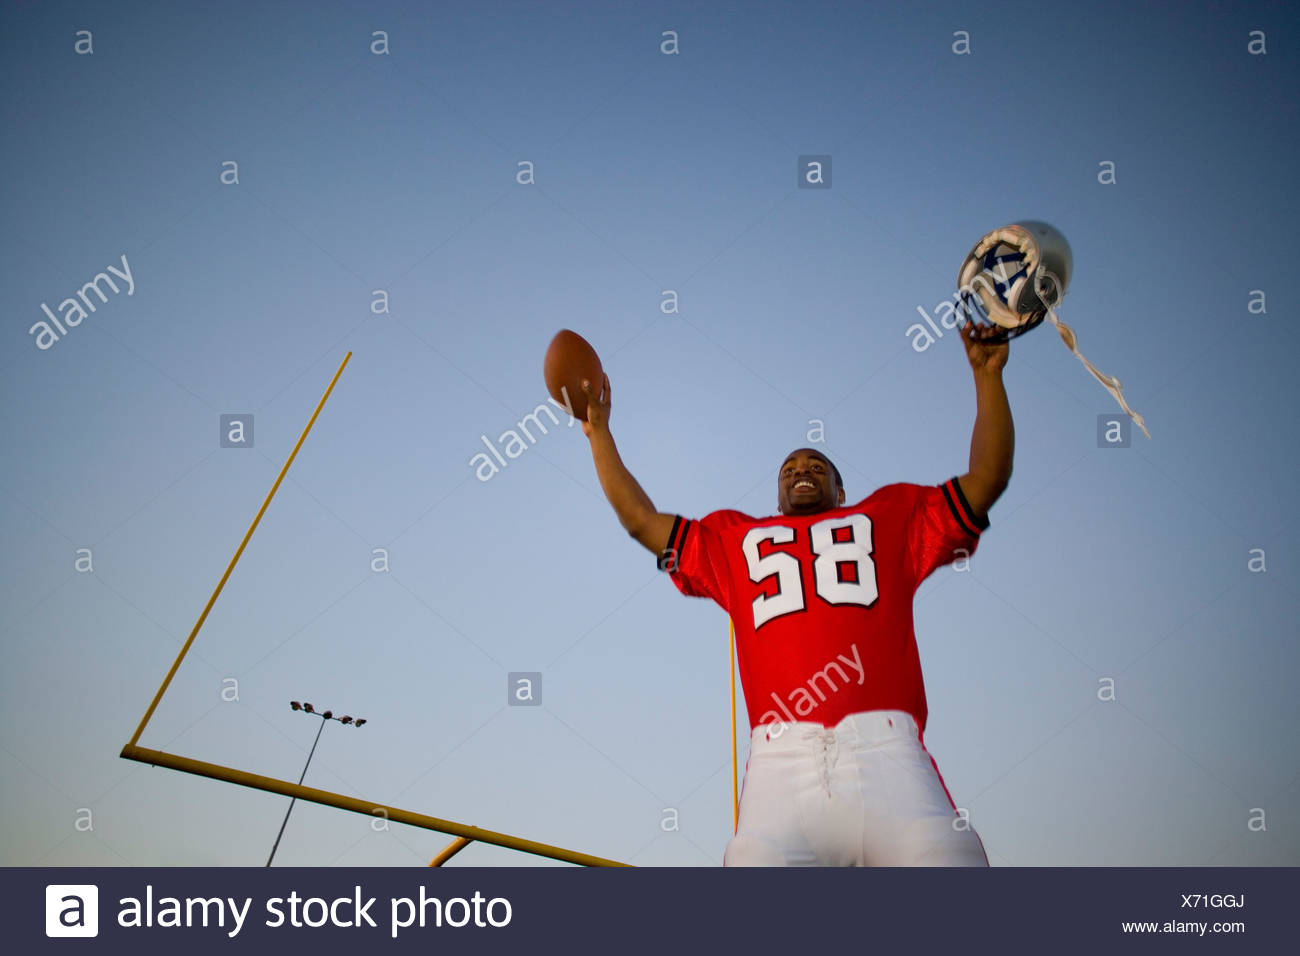 American football player, in red strip, celebrating victory on pitch at sunset, arms up, holding ball and protective helmet - Stock Image